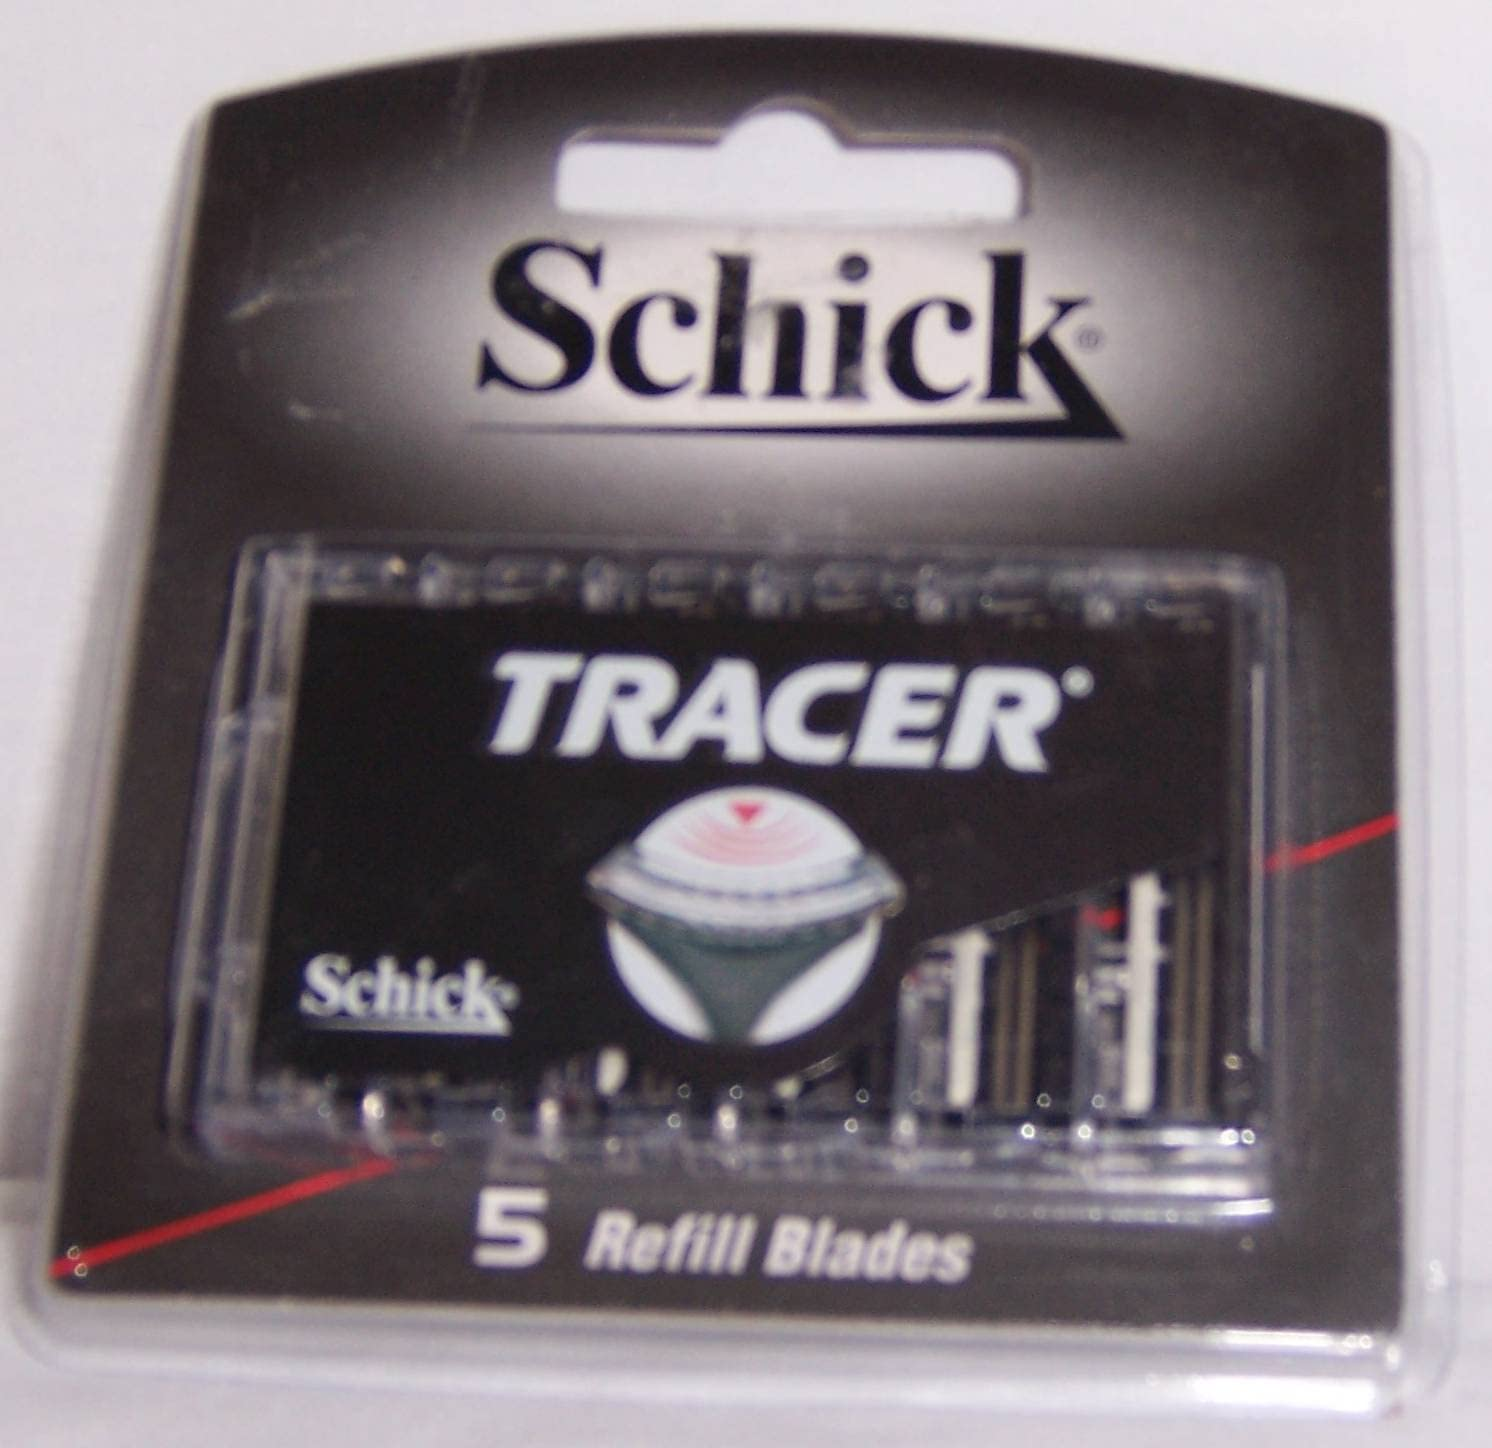 SCHICK TRACER REFILL BLADES OF PACK 5 Max We OFFer at cheap prices 86% OFF